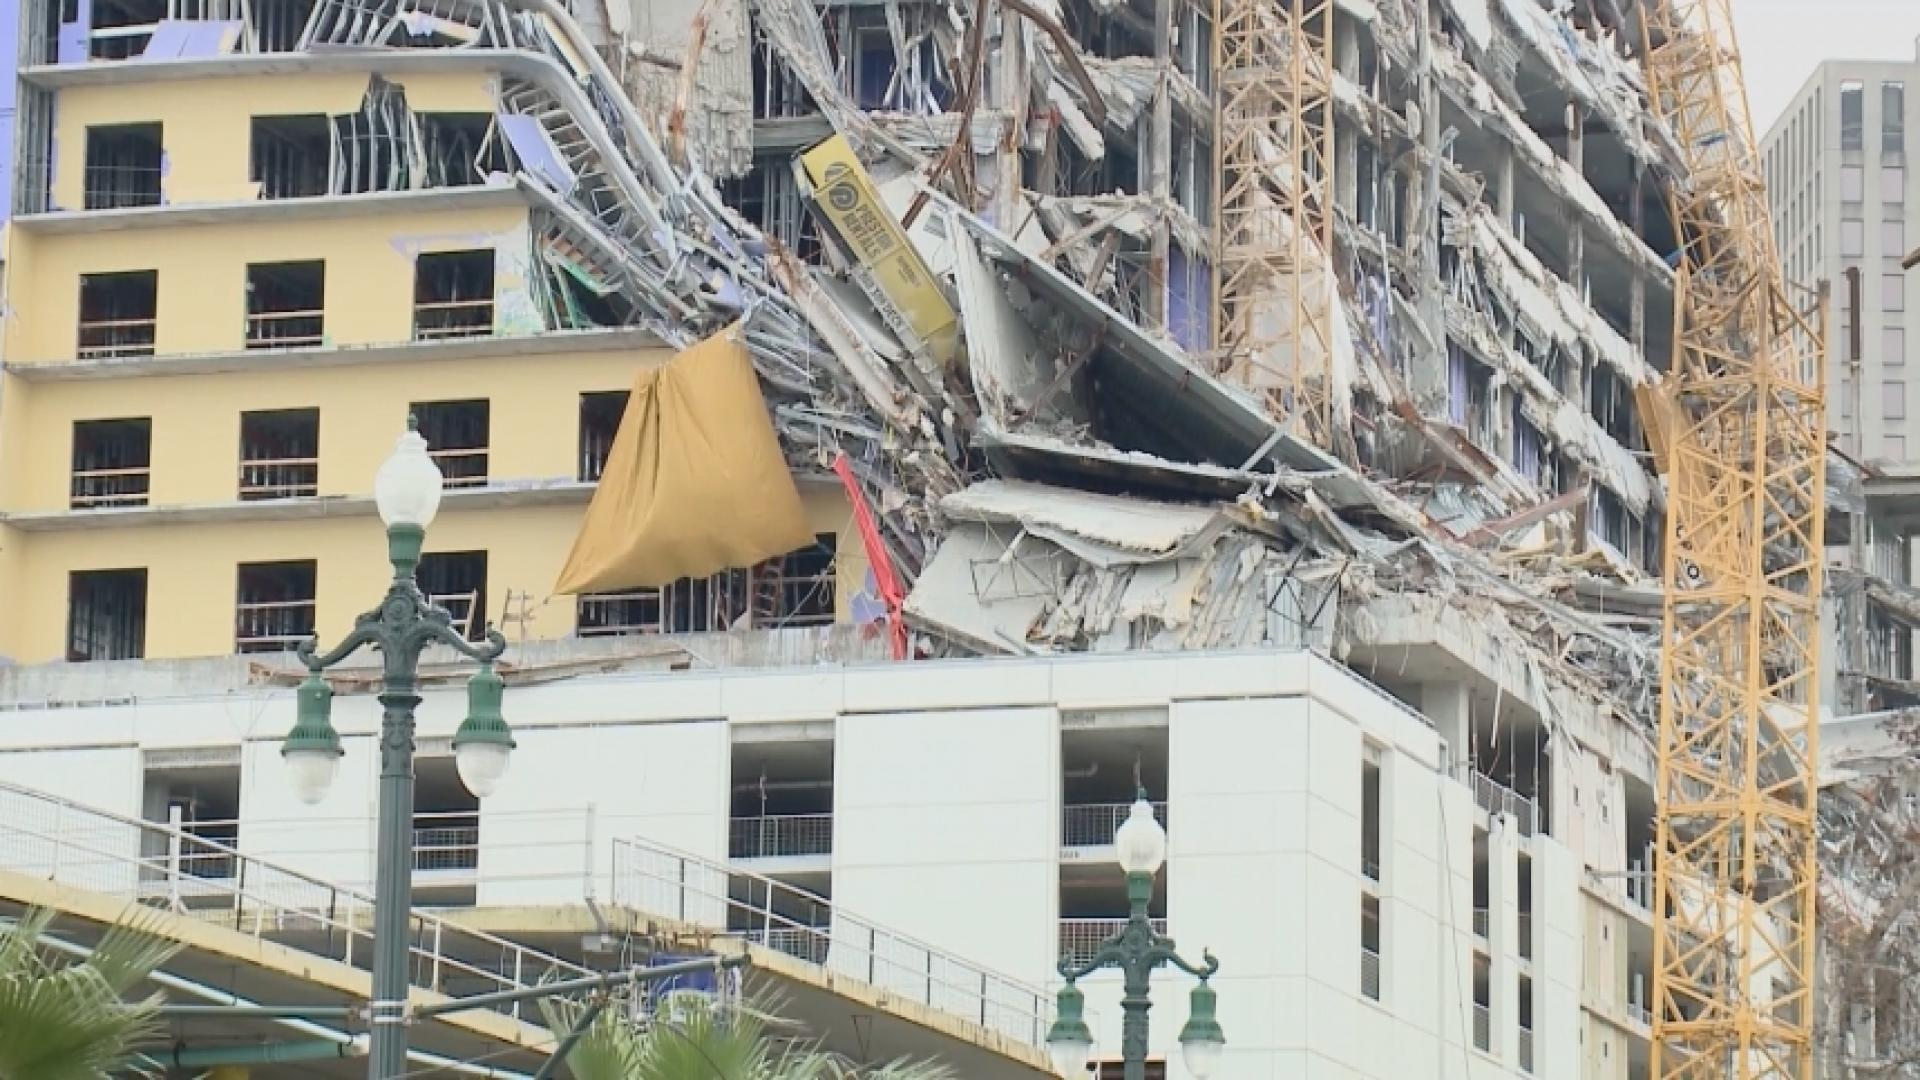 Body spotted months after Hard Rock Hotel collapse sparks outrage in New Orleans